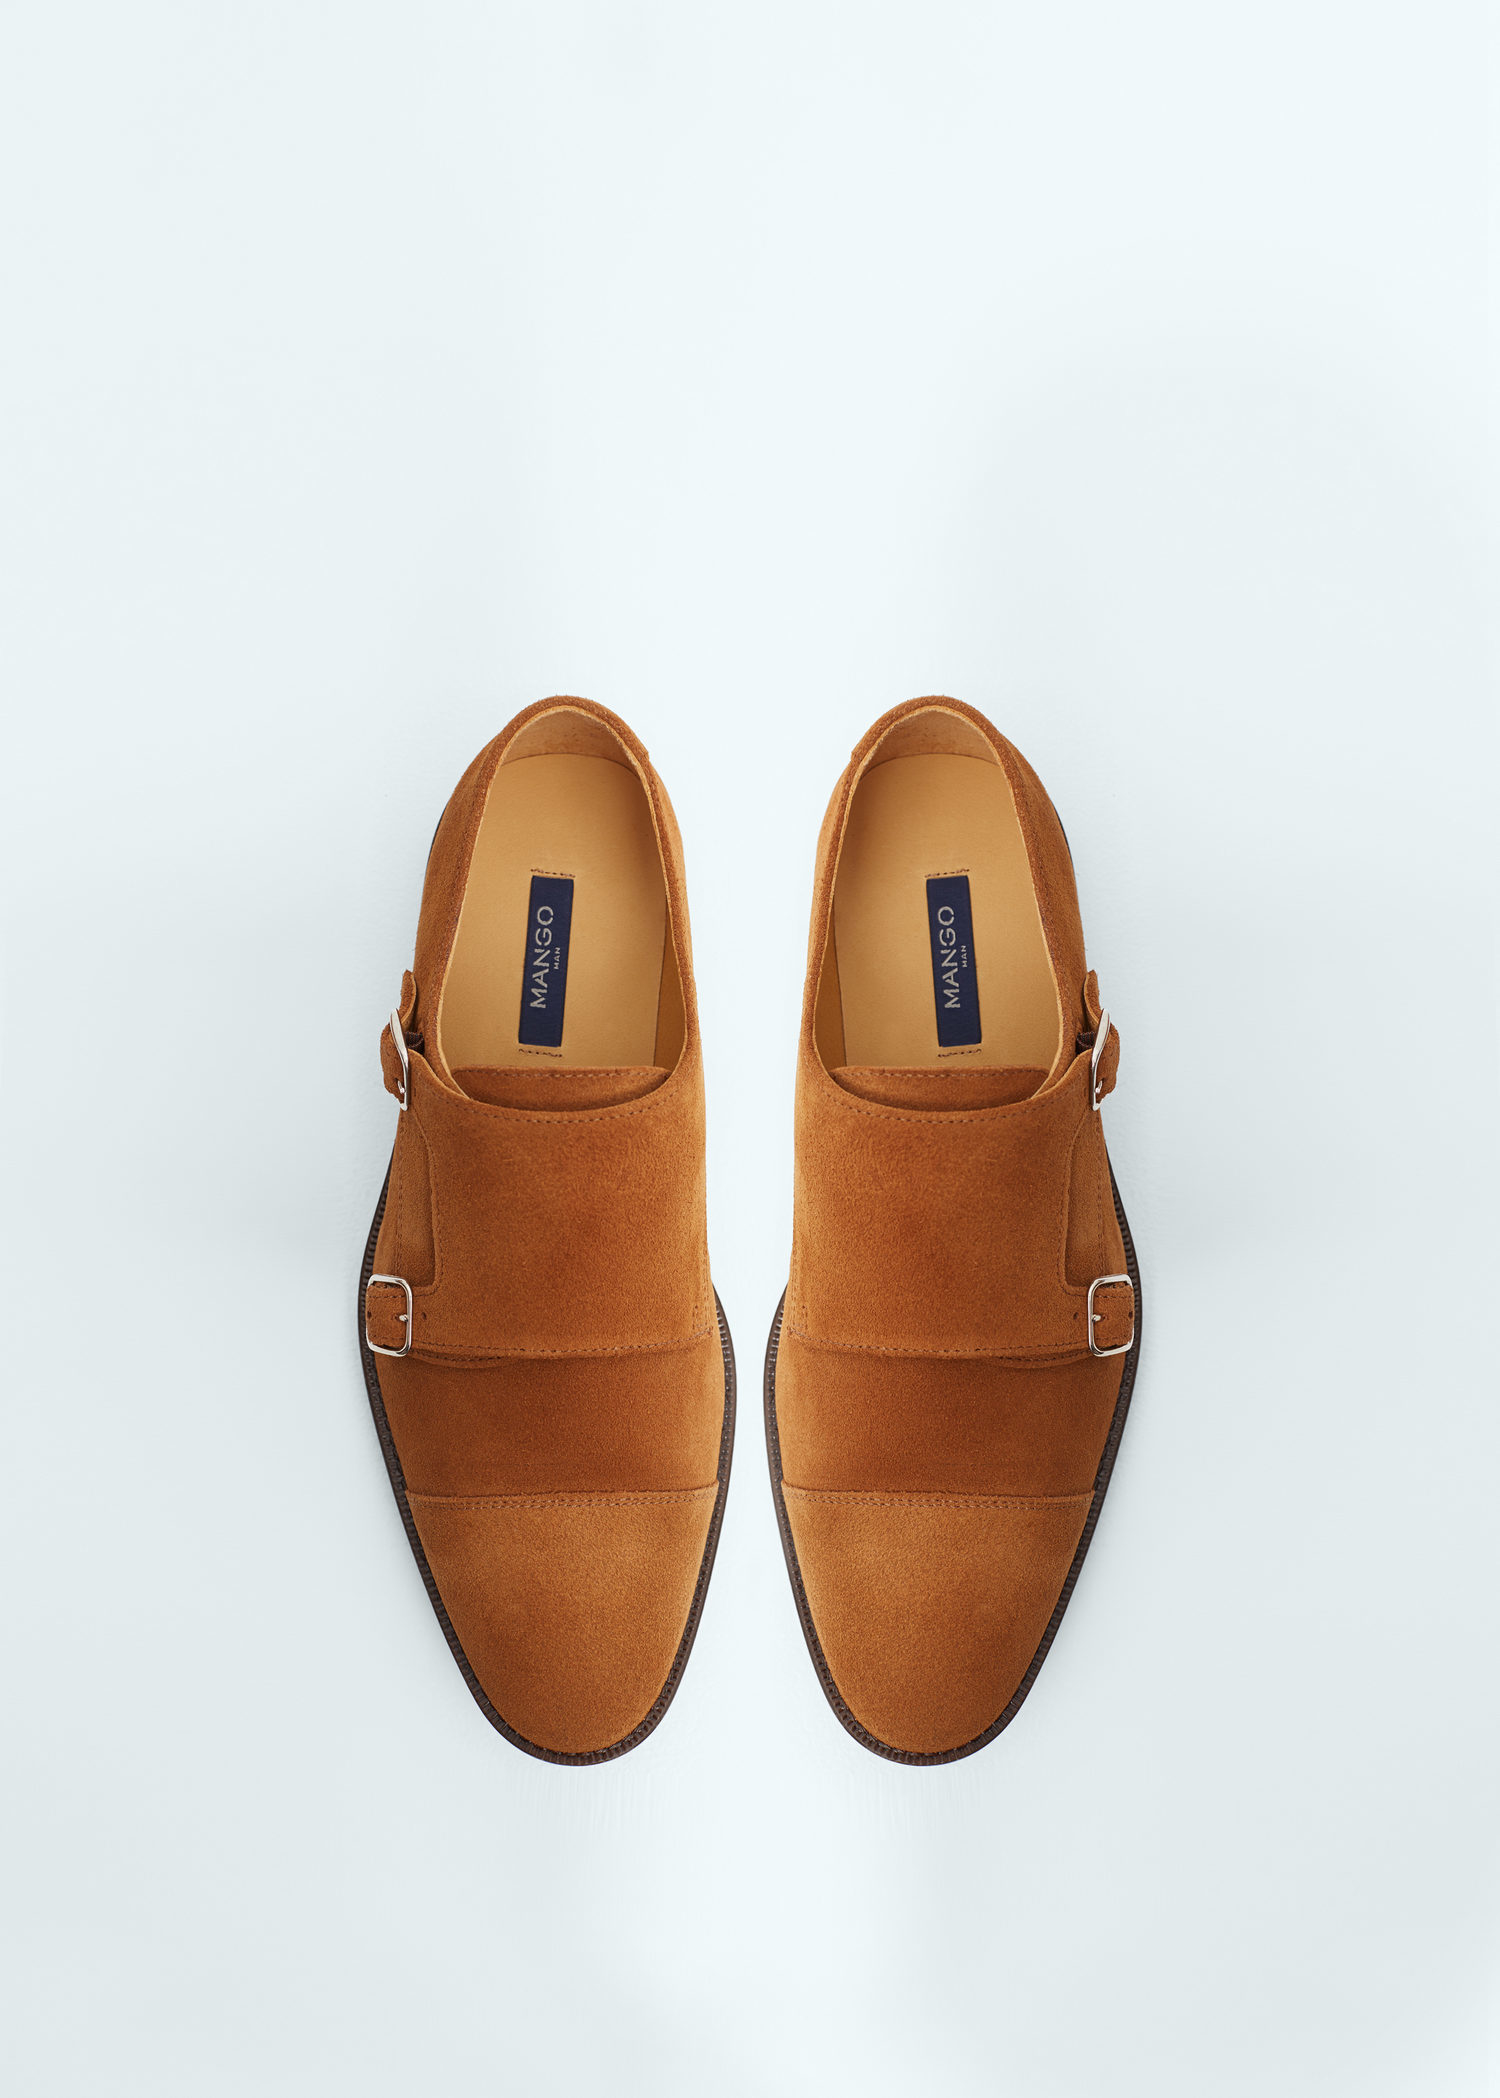 b7a96b0aea60 Lyst - Mango Leather Monk-strap Shoes in Brown for Men